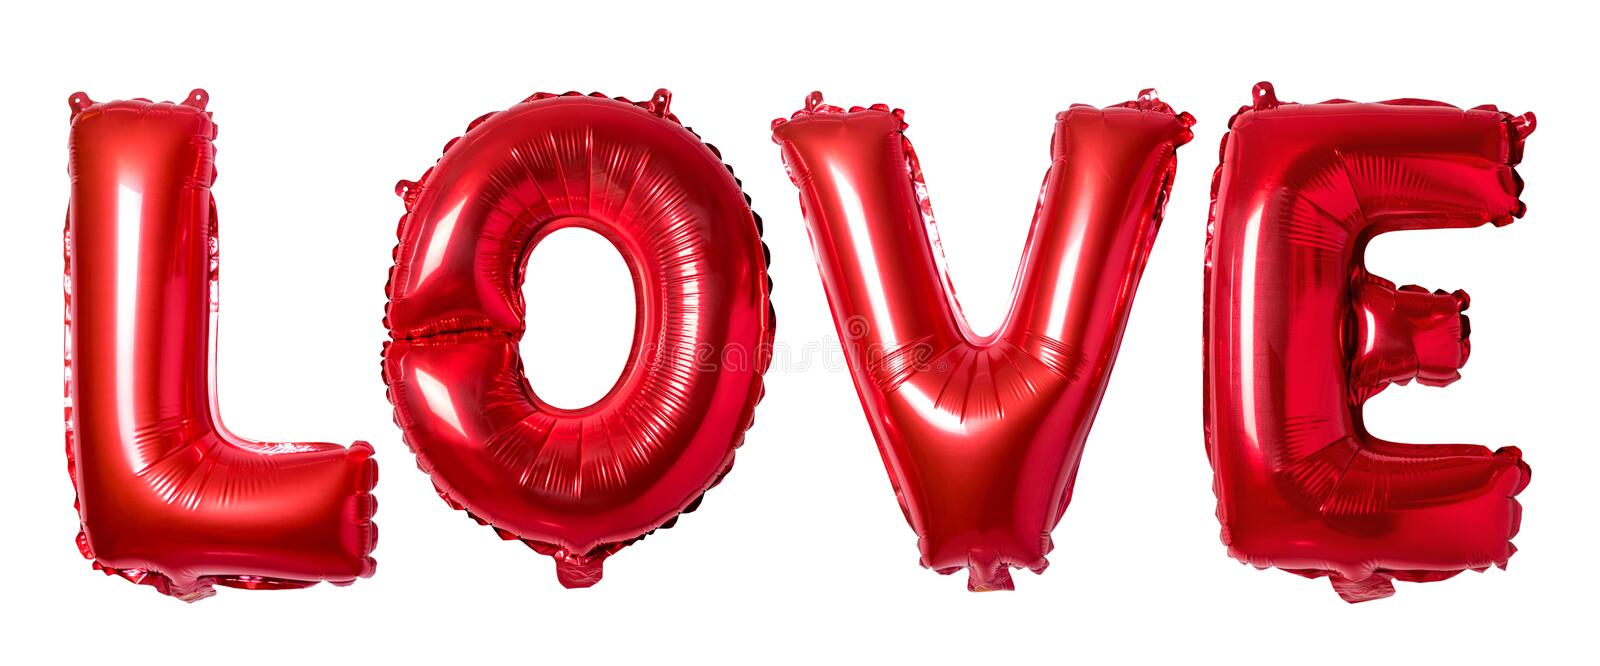 Word love in english alphabet from red balloons on a white background. Minimal love concept.  stock photo